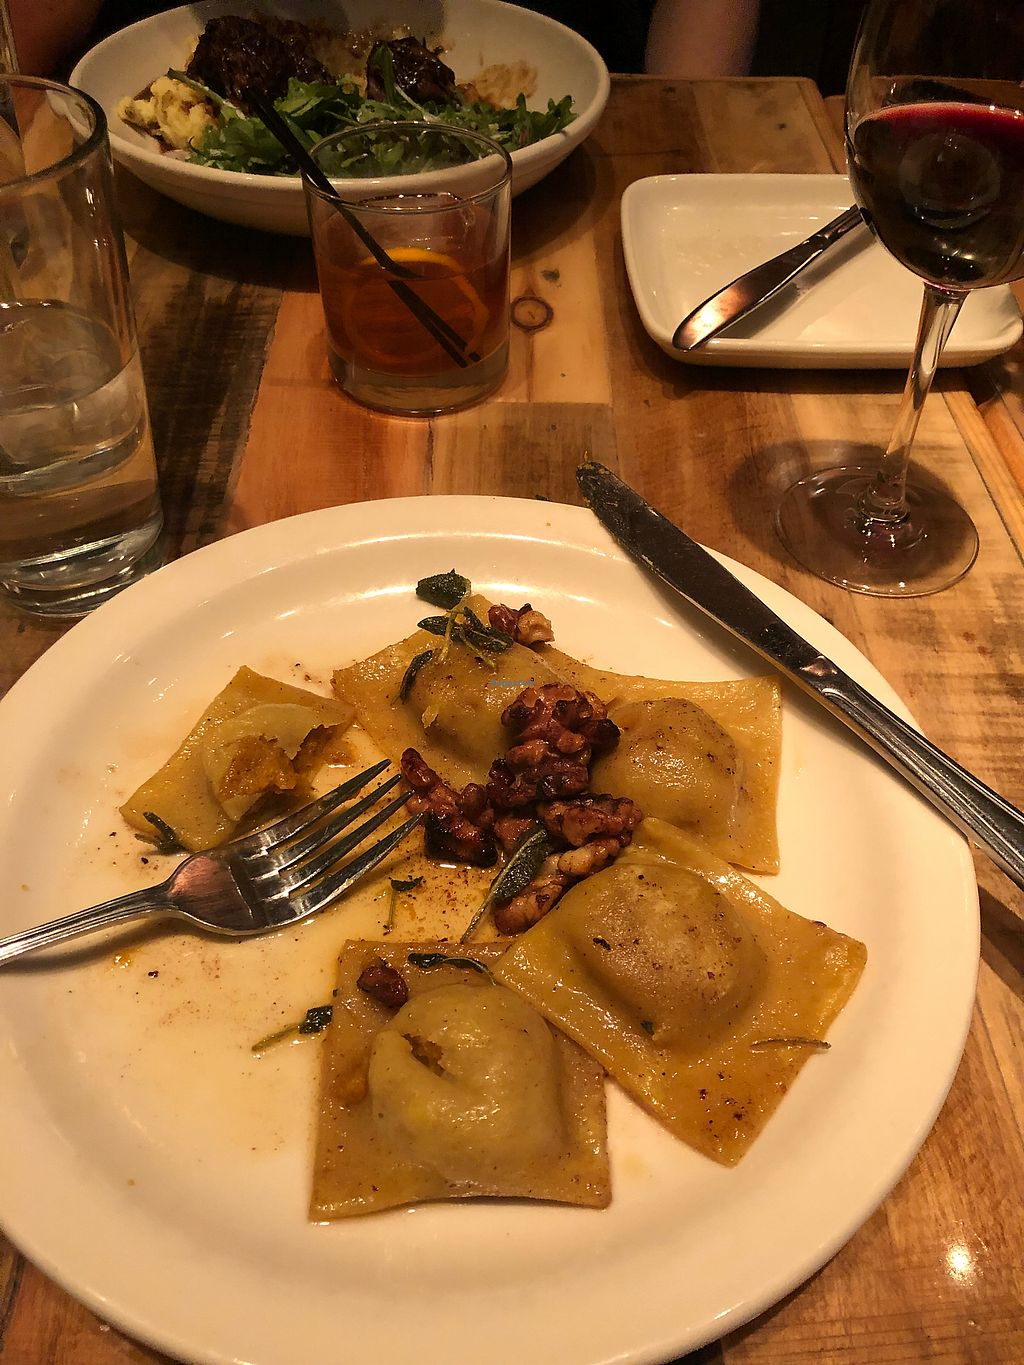 """Photo of French Meadow Bakery and Cafe - Lyndale Ave  by <a href=""""/members/profile/SaraSmith"""">SaraSmith</a> <br/>Butternut squash ravioli <br/> March 14, 2018  - <a href='/contact/abuse/image/4537/370574'>Report</a>"""